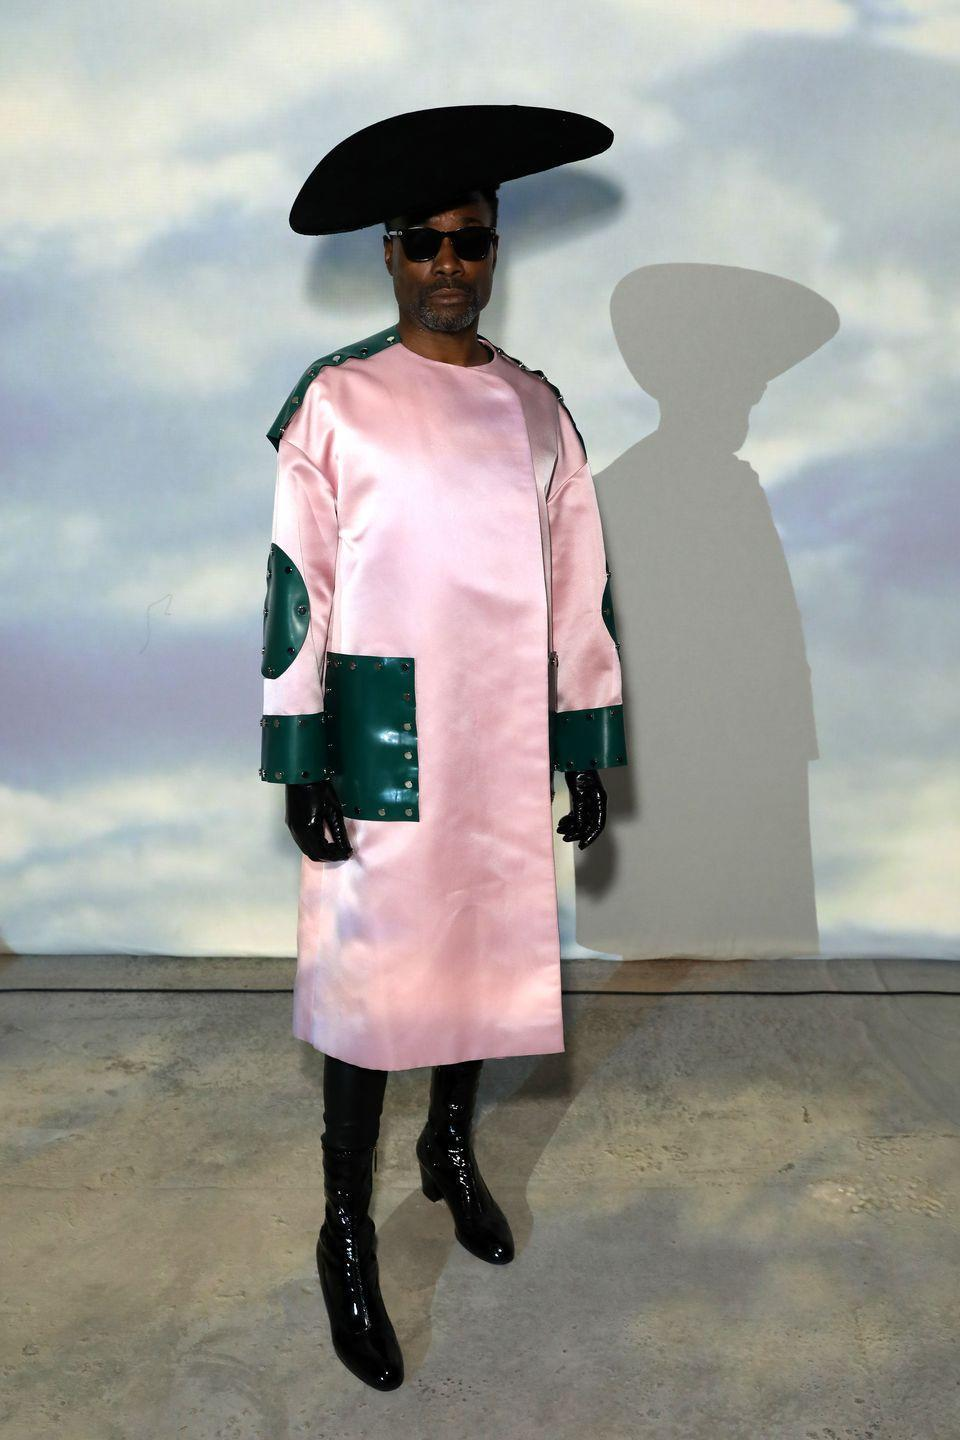 """<p>An appearance at Christopher Kane's SS20 show prompted Porter to opt for a Kane-designed pink coat, Sarah Sokol black hat, Eyevan sunglasses, Gucci black boots and Wing Weft gloves.</p><p>'Love lift us up where we belong,' he captioned a photograph of his outfit on <a href=""""https://www.instagram.com/p/B2g8sHiFV9T/"""" rel=""""nofollow noopener"""" target=""""_blank"""" data-ylk=""""slk:Instagram"""" class=""""link rapid-noclick-resp"""">Instagram</a>. 'Far from the world below. Up where the clear winds blow.'</p>"""